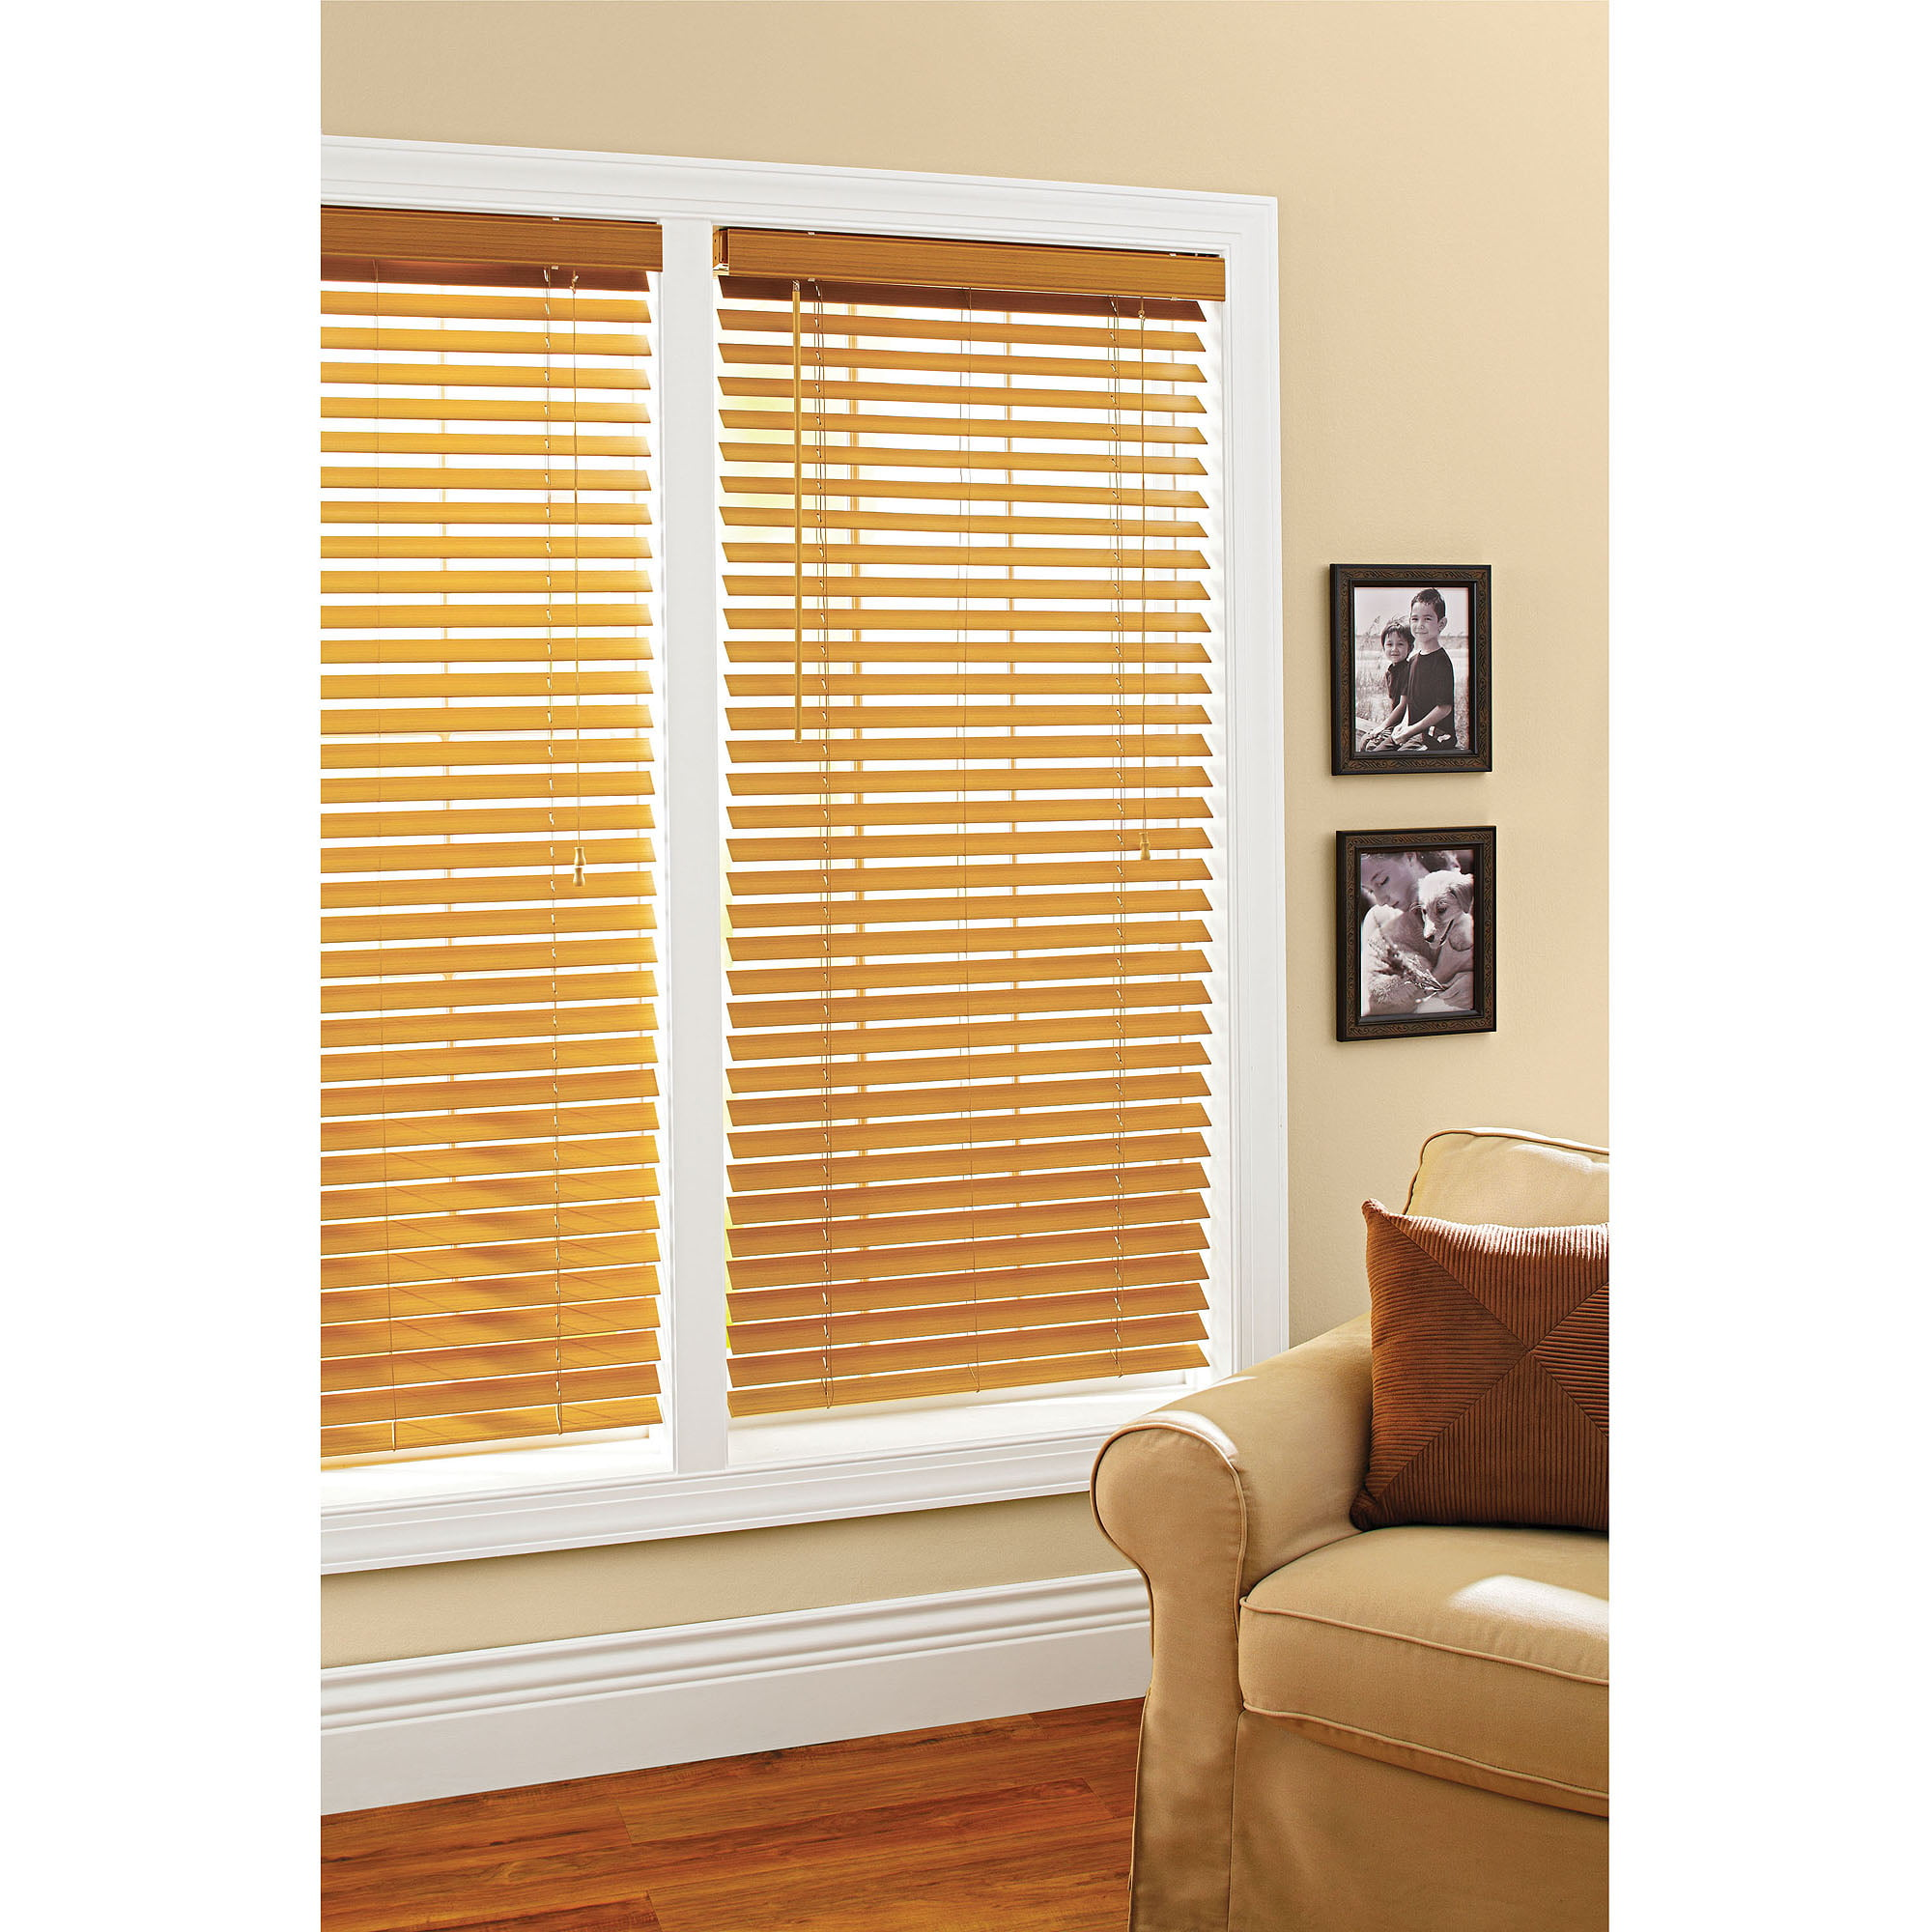 Radiance 1 4 Oval Pvc Roll Up Blinds Walmart Com